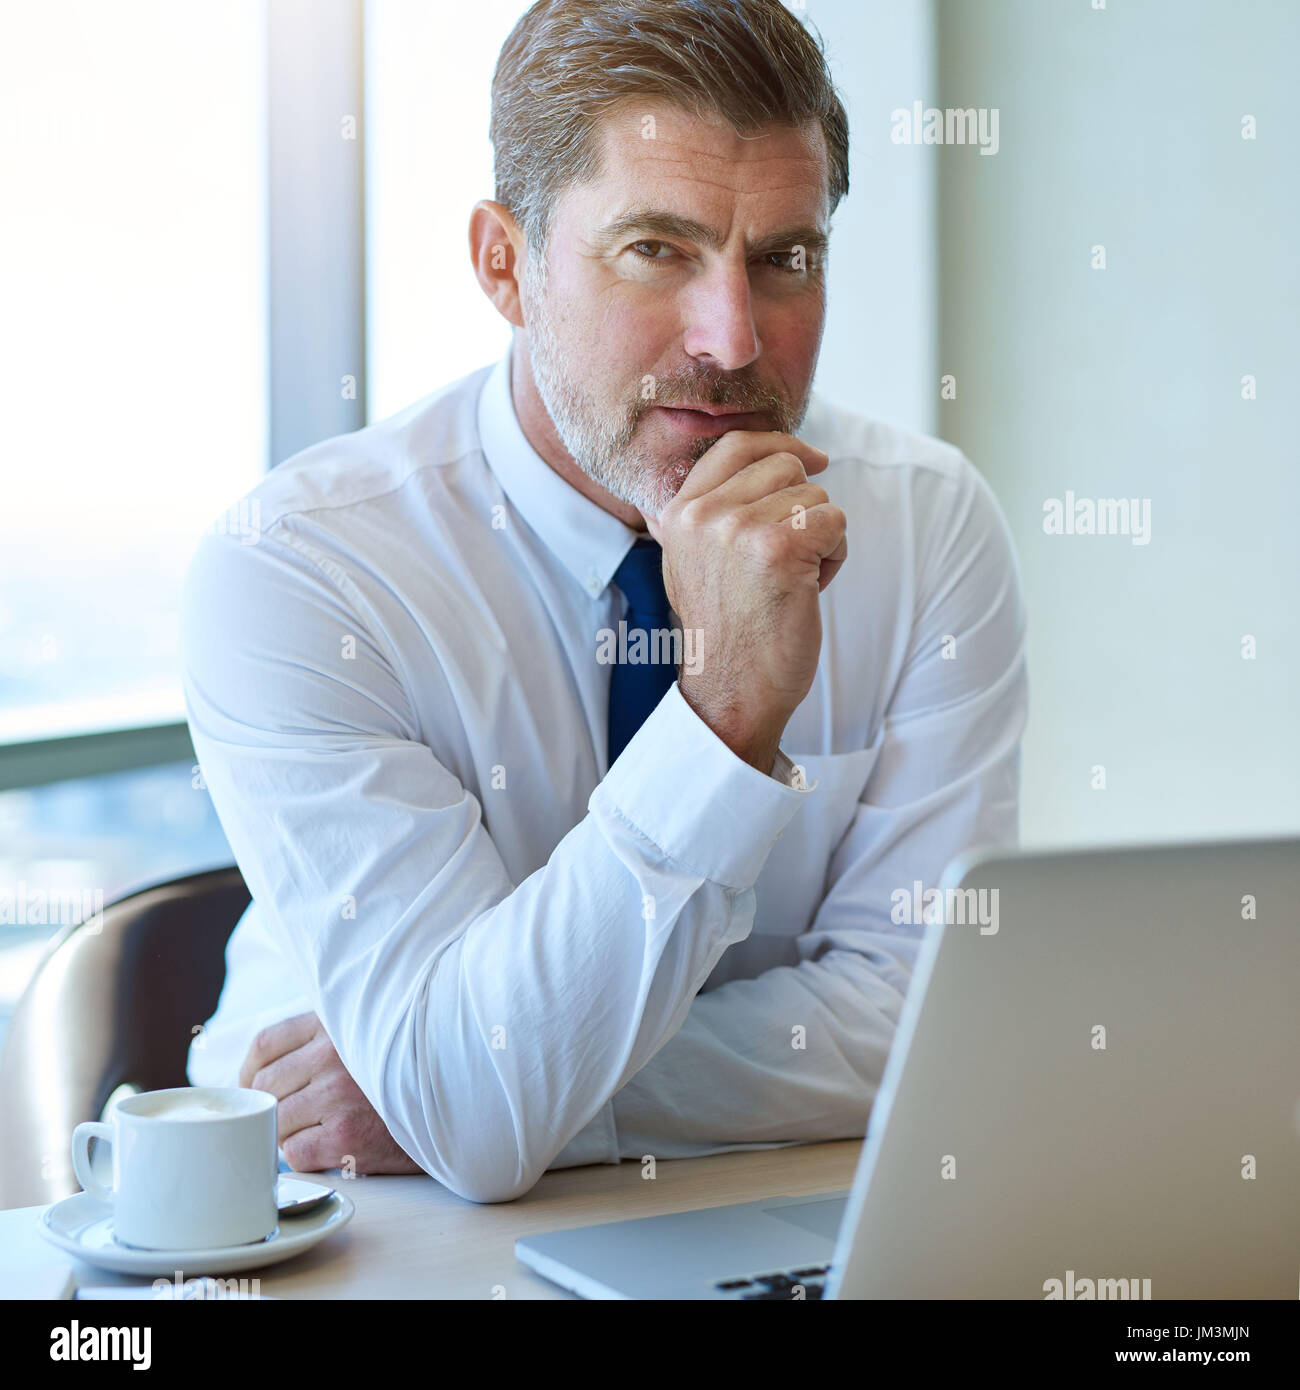 Portrait of a handsome mature business leader with greying hair and attractive short beard, sitting at this desk with a laptop and looking at the came - Stock Image